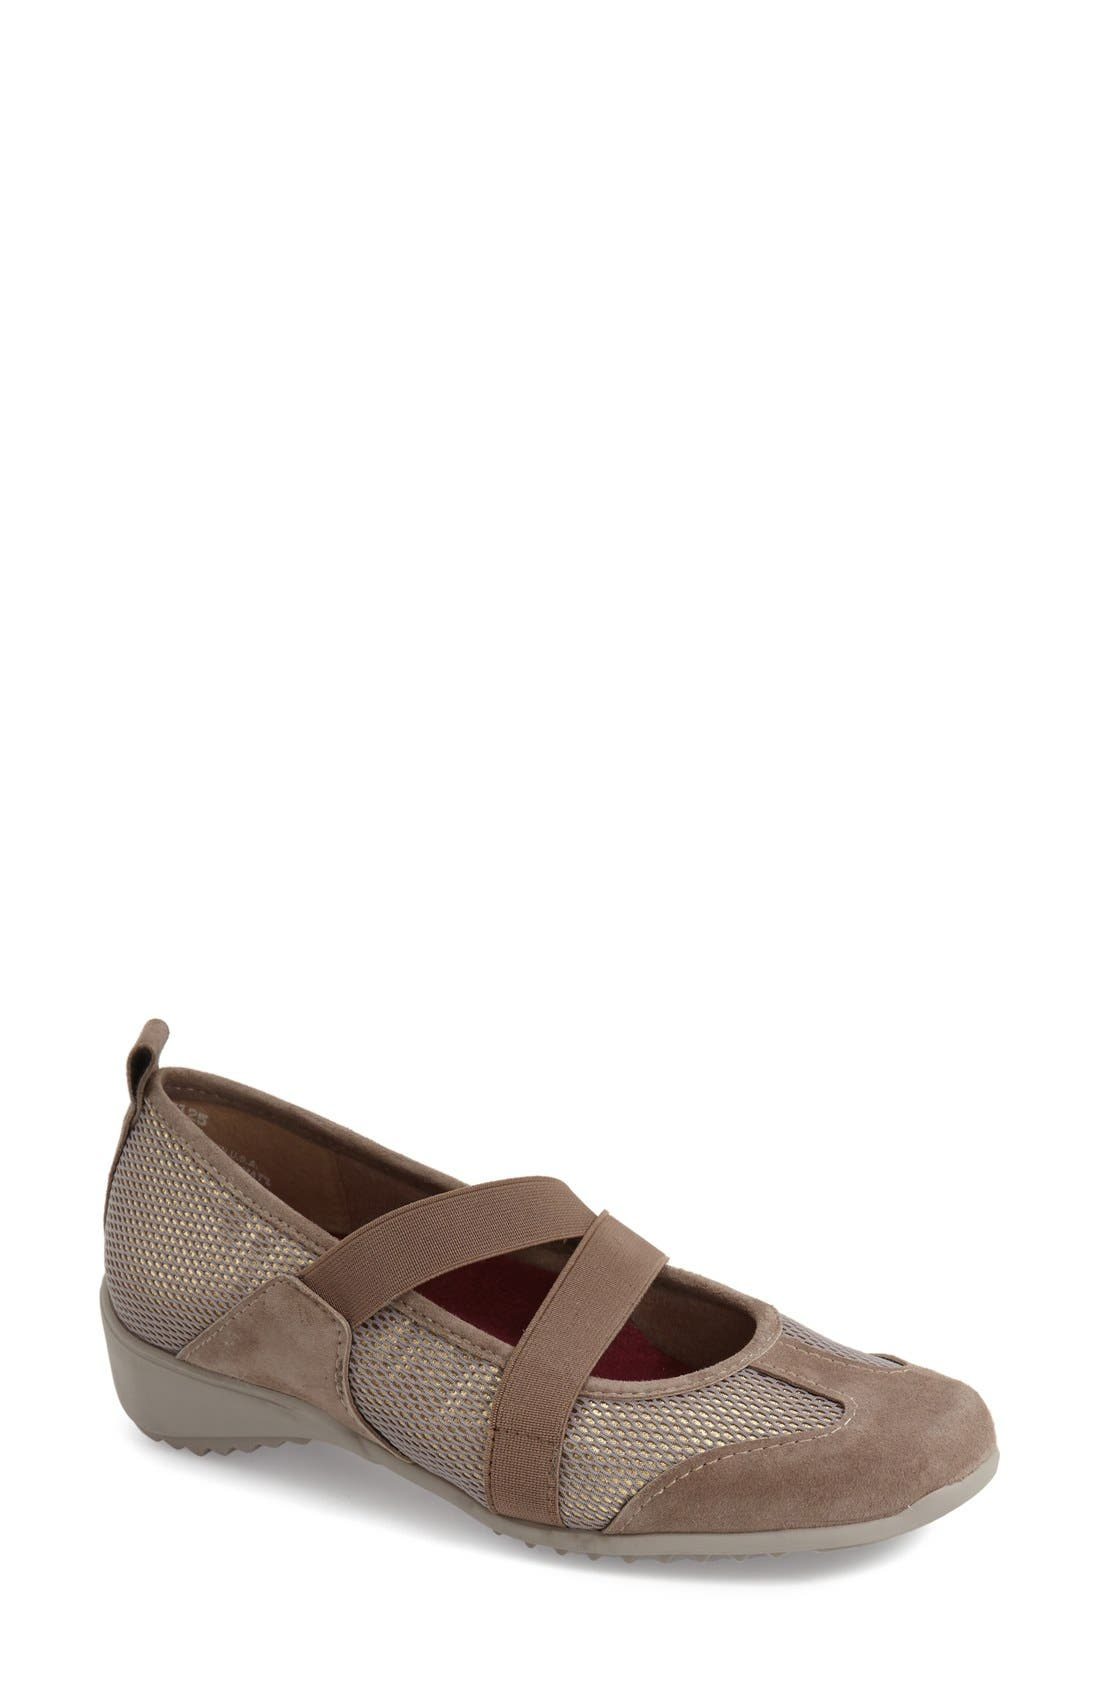 Alternate Image 1 Selected - Munro 'Zip' Mary Jane Flat (Women)